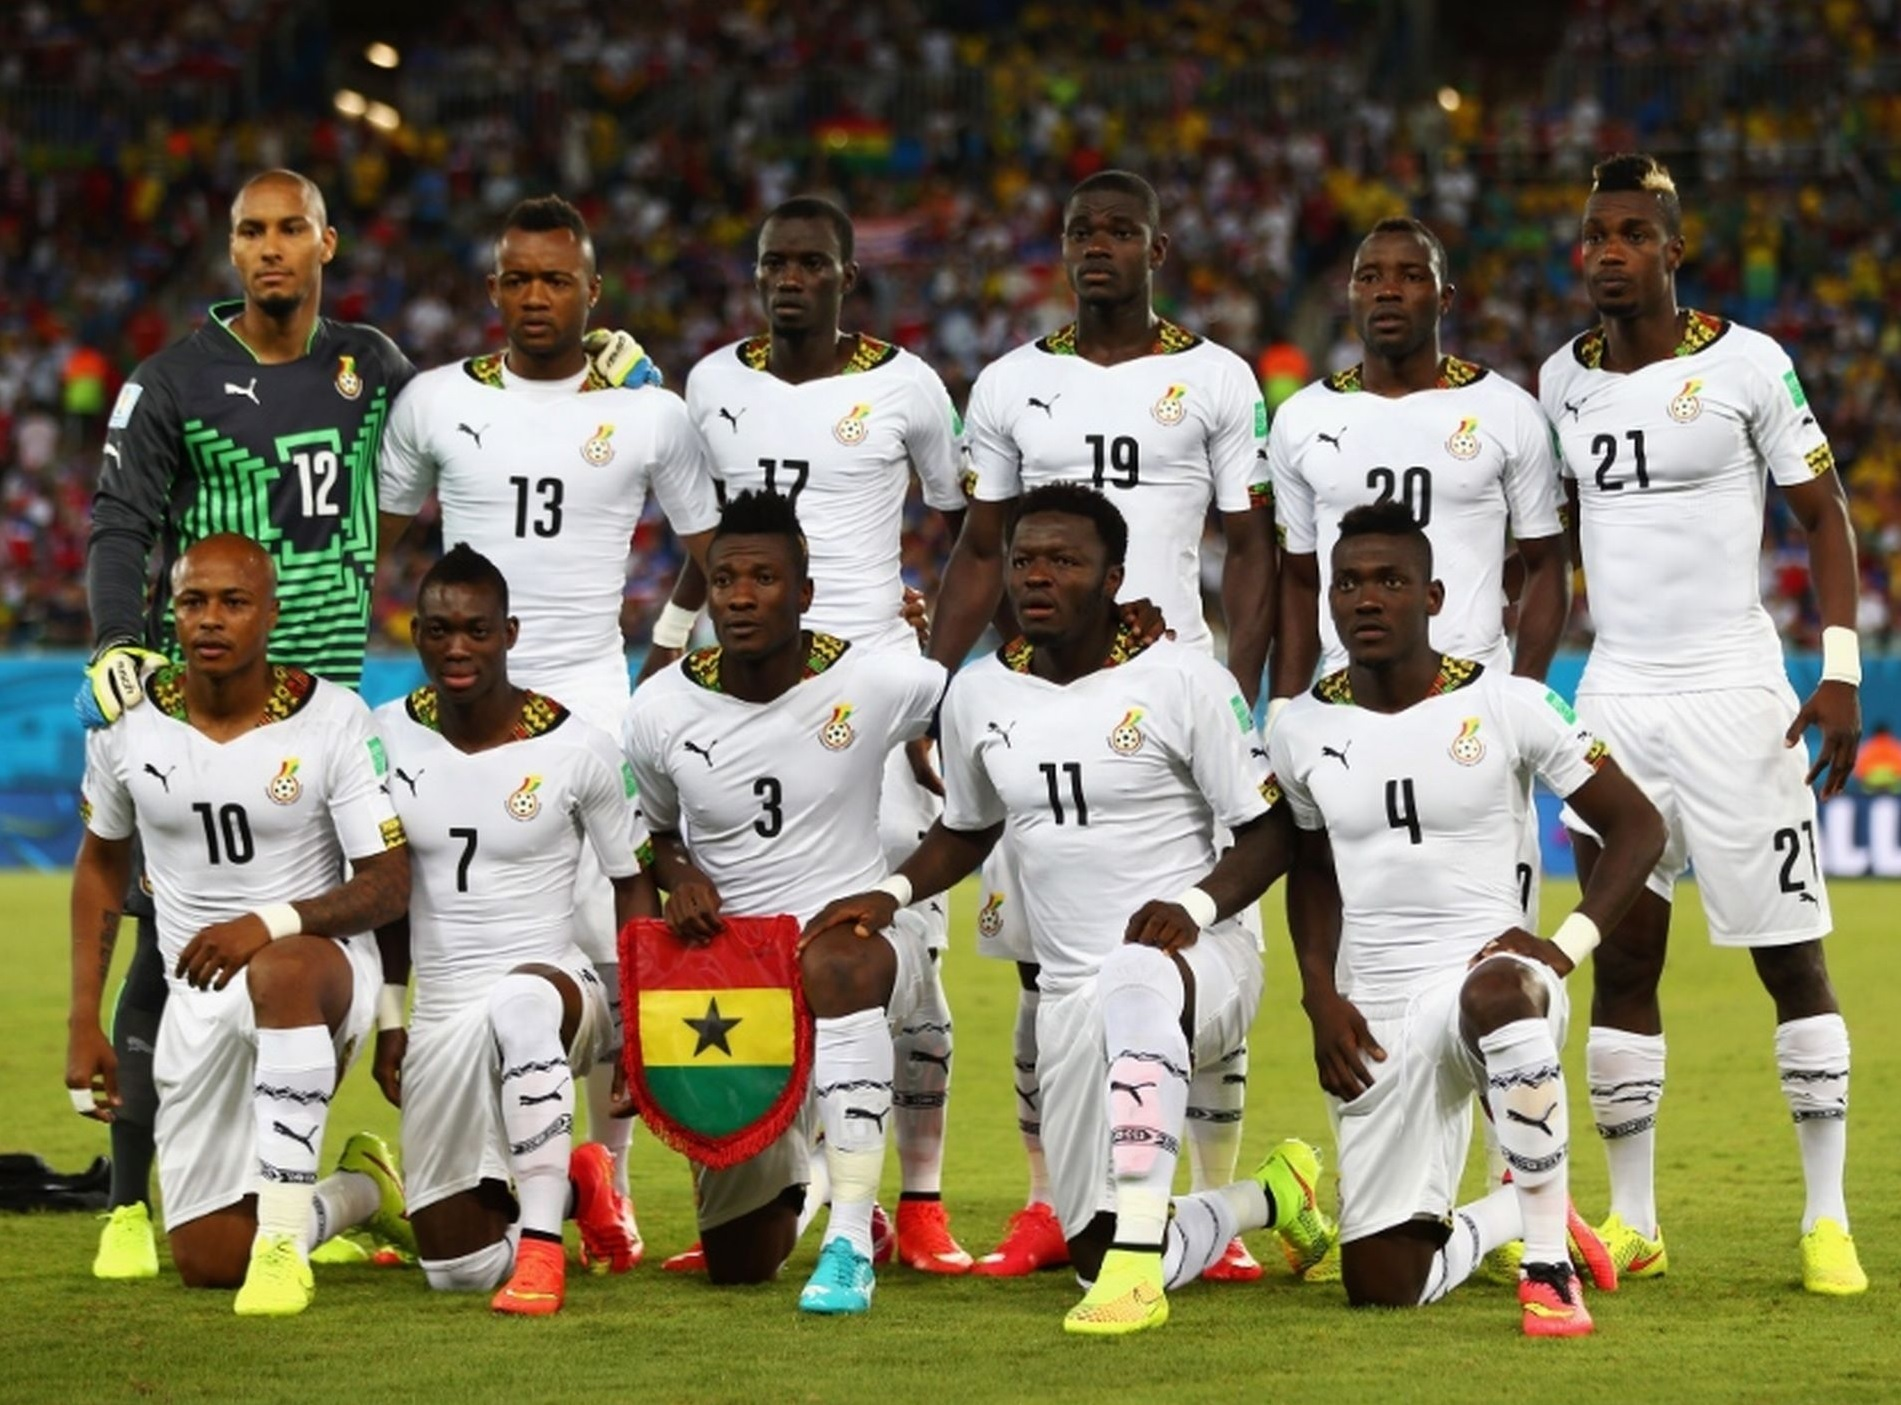 Ghana-2014-PUMA-world-cup-home-kit-white-white-white-line-up.jpg